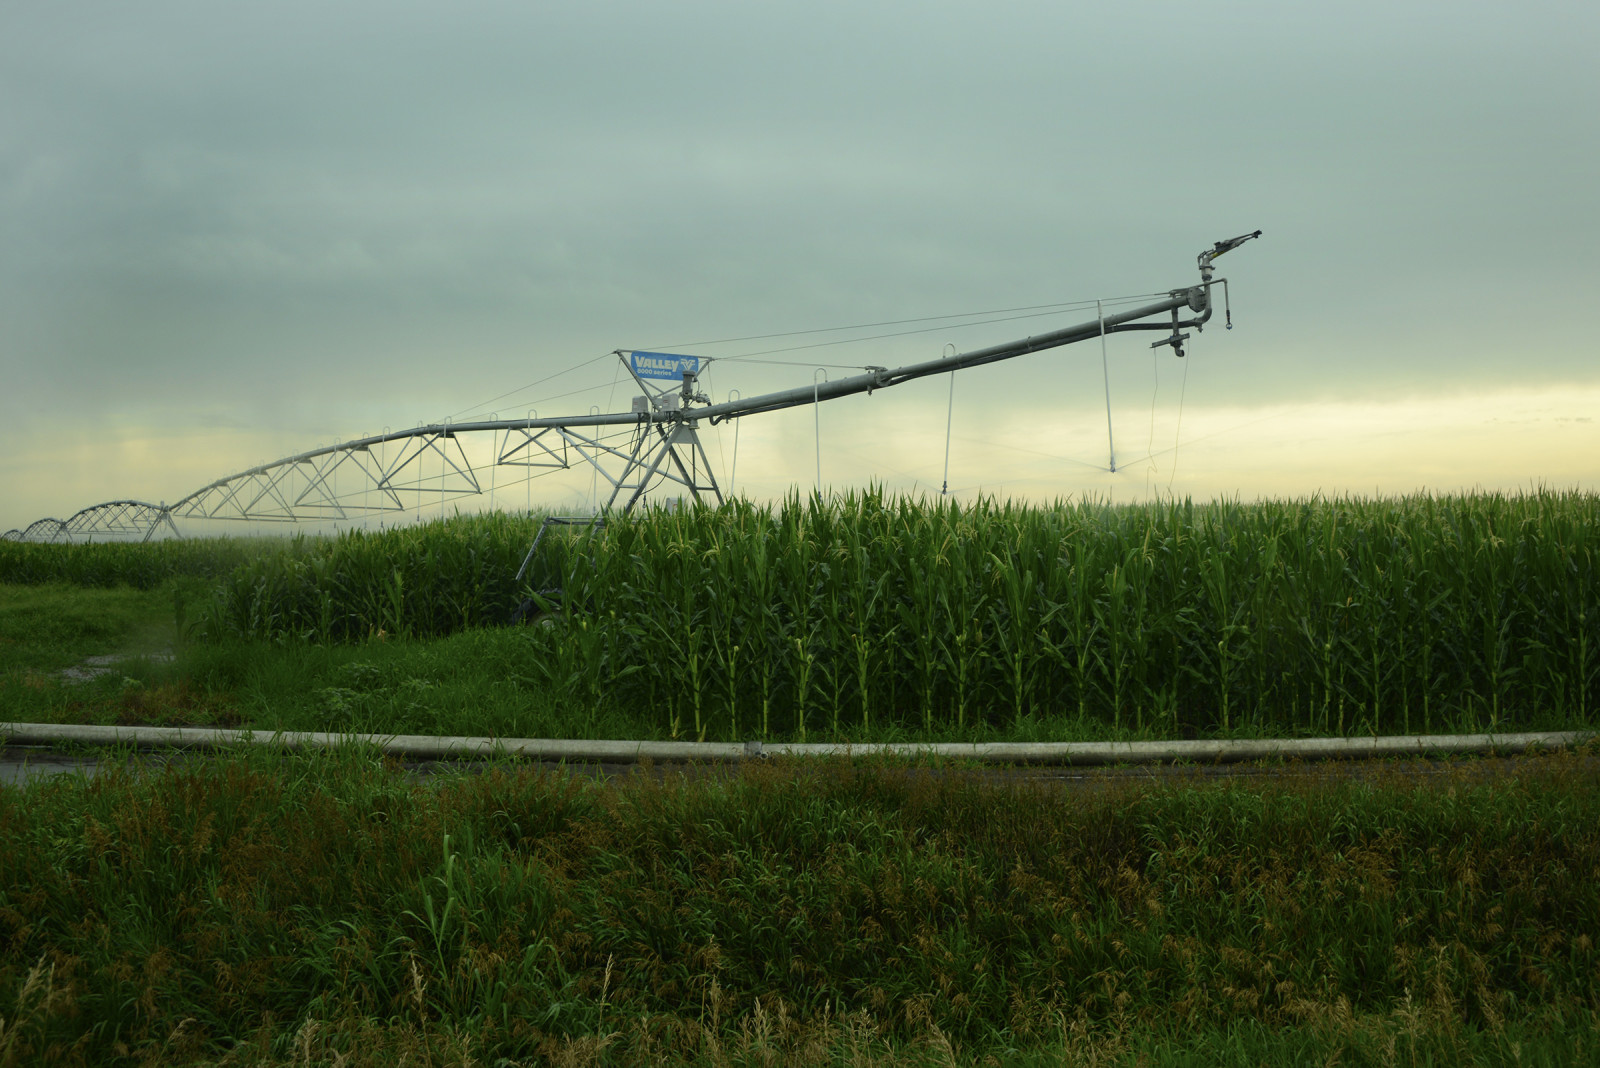 A center pivot irrigation system in central Nebraska. (Mariah Lundgren)